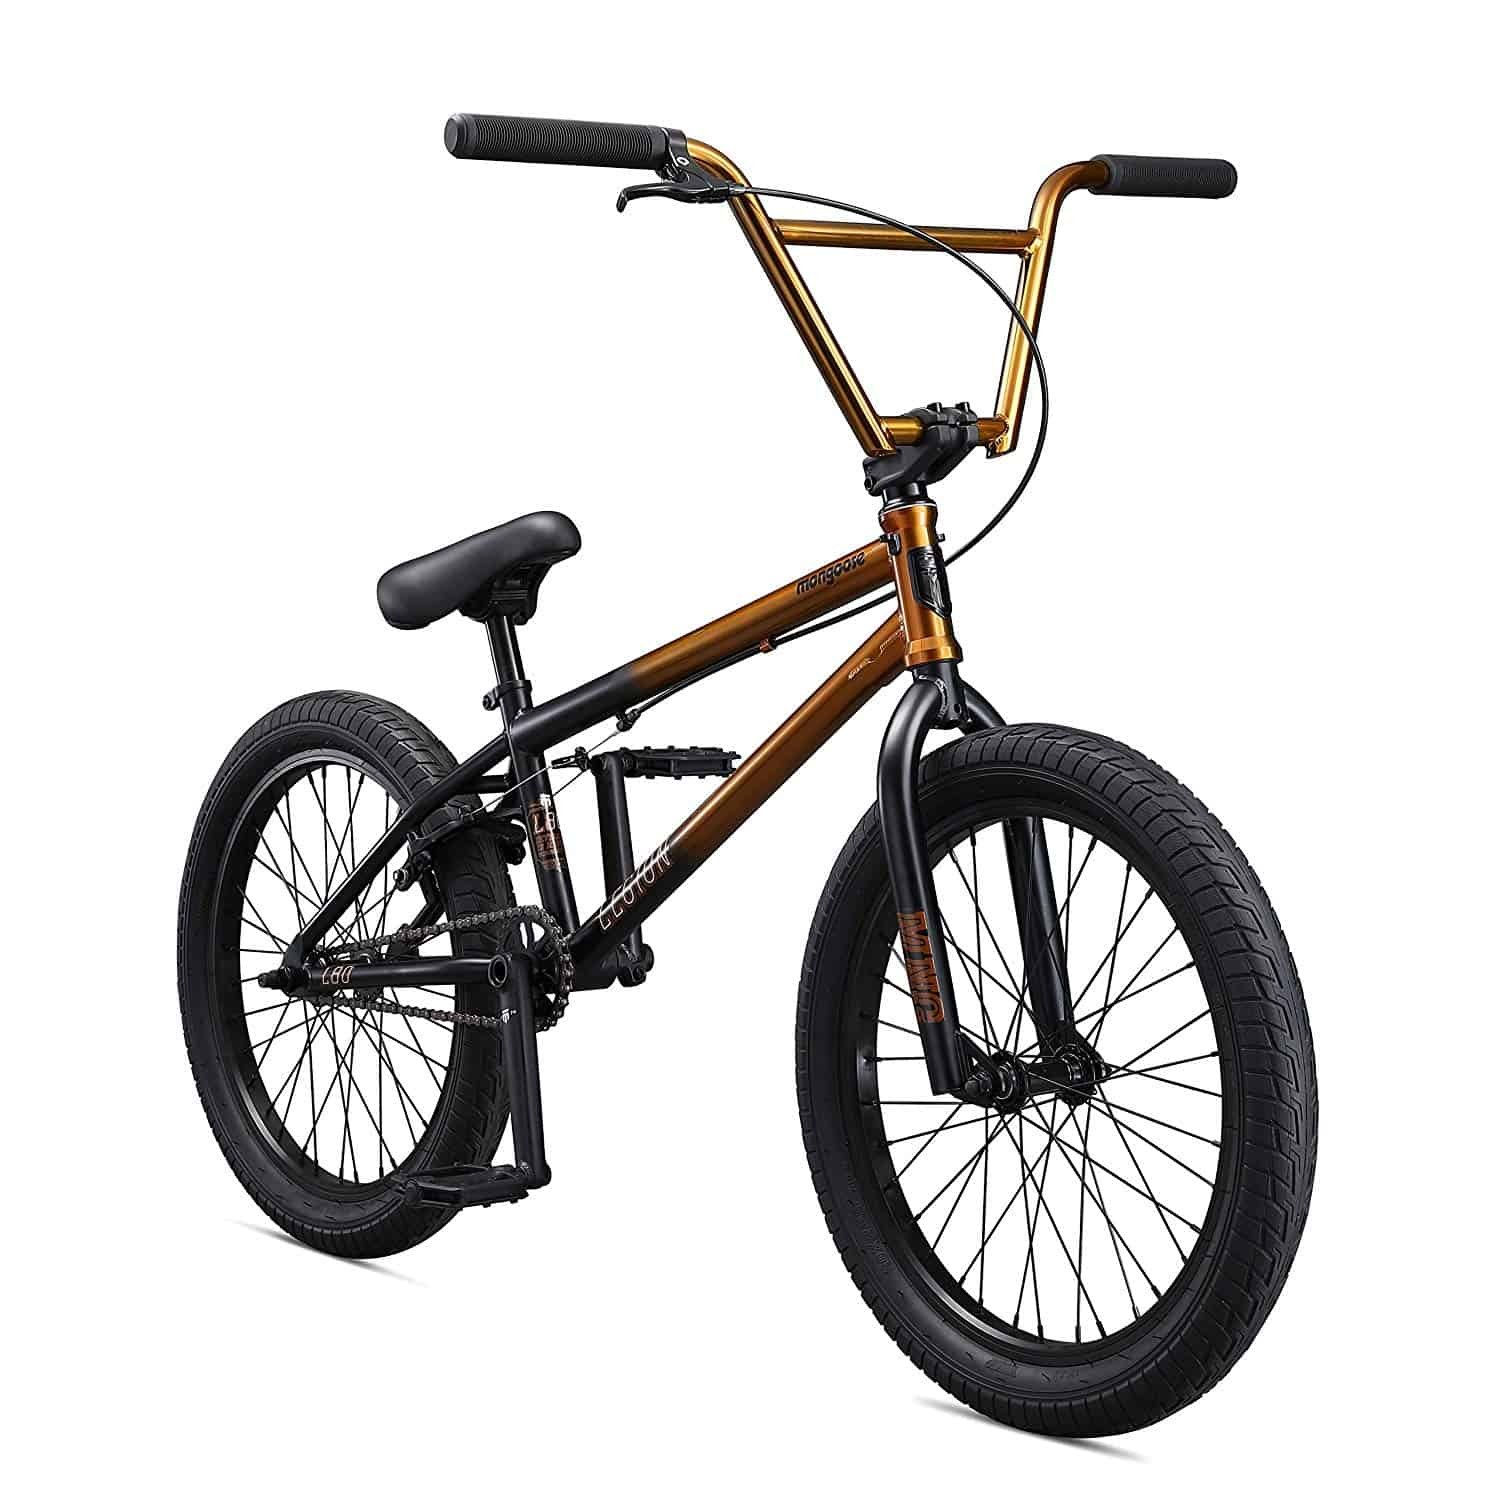 Best BMX Bikes: 14 Top Trick/Freestyle Bikes For Kids, teens, and Adults in 2019 2